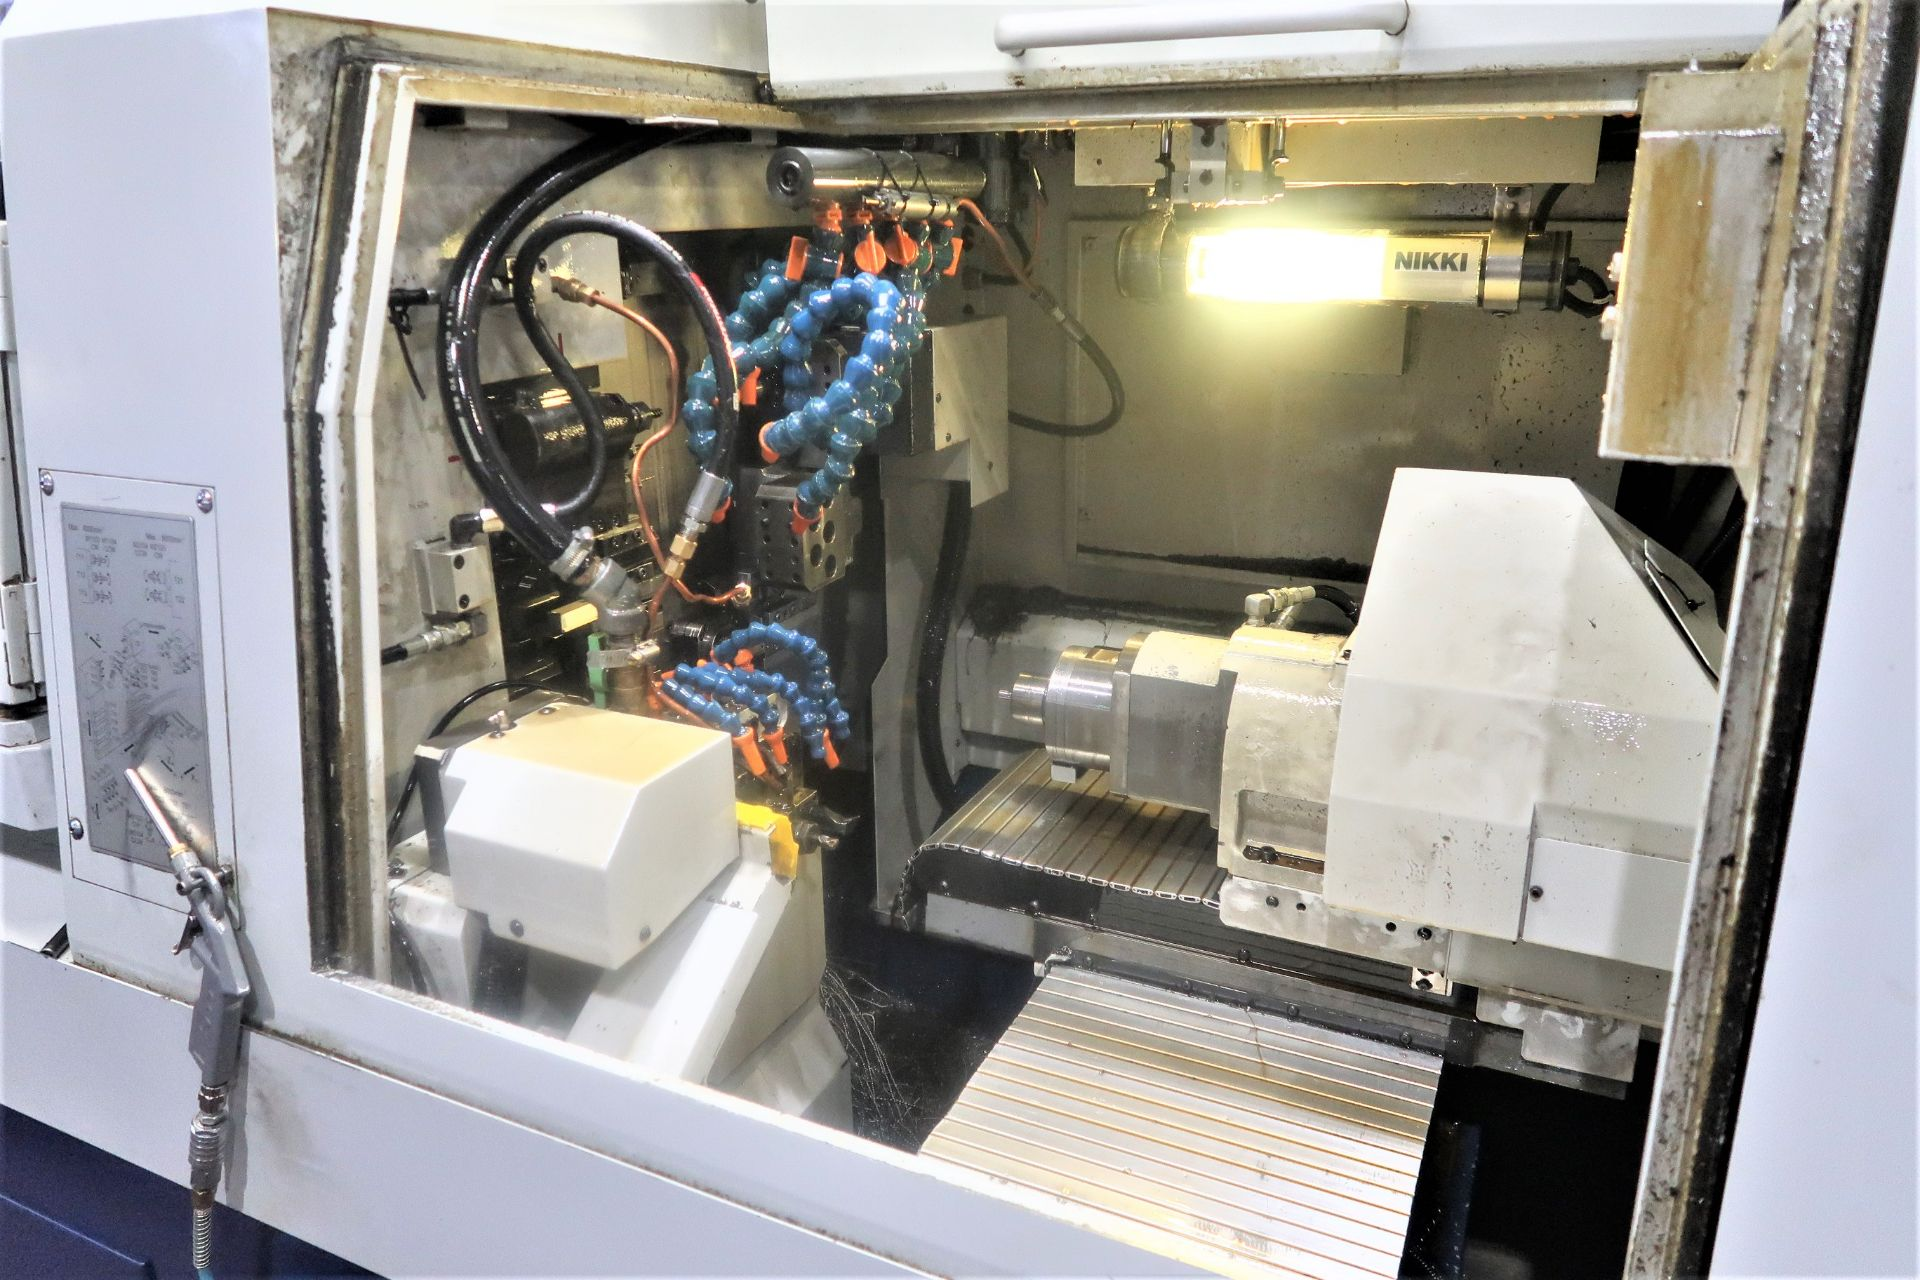 Lot 34 - Tsugami S206/Tornos Gamma 20/6 6-Axis CNC Swiss Type Automatic, S/N 20620531, New 2011